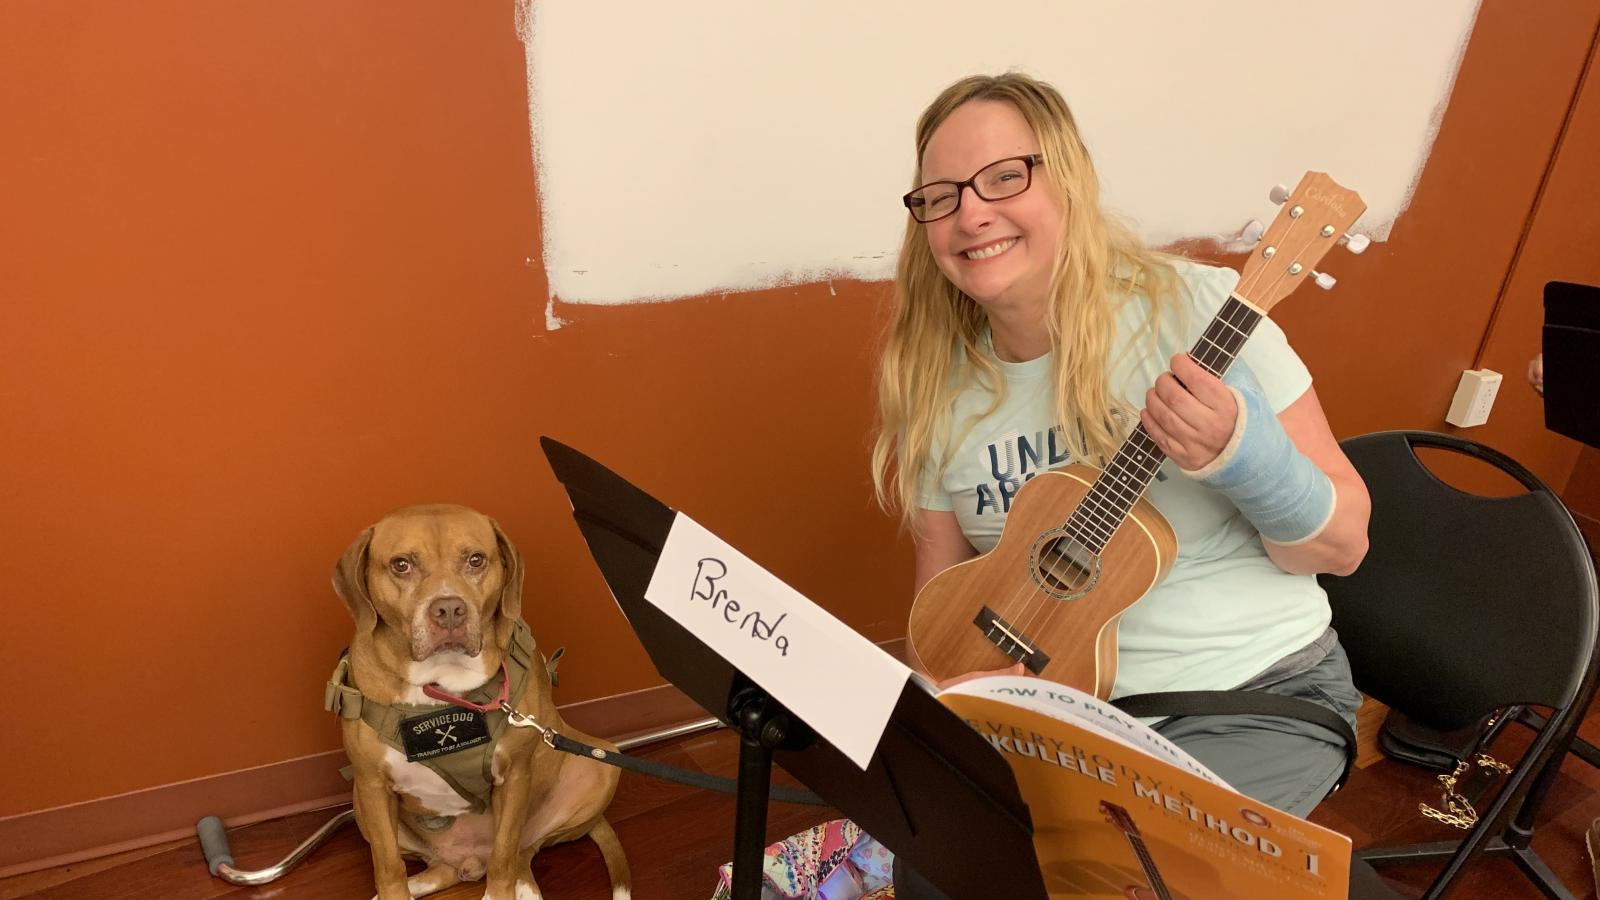 Woman with ukelele sitting and smiling with service dog sitting next to her.